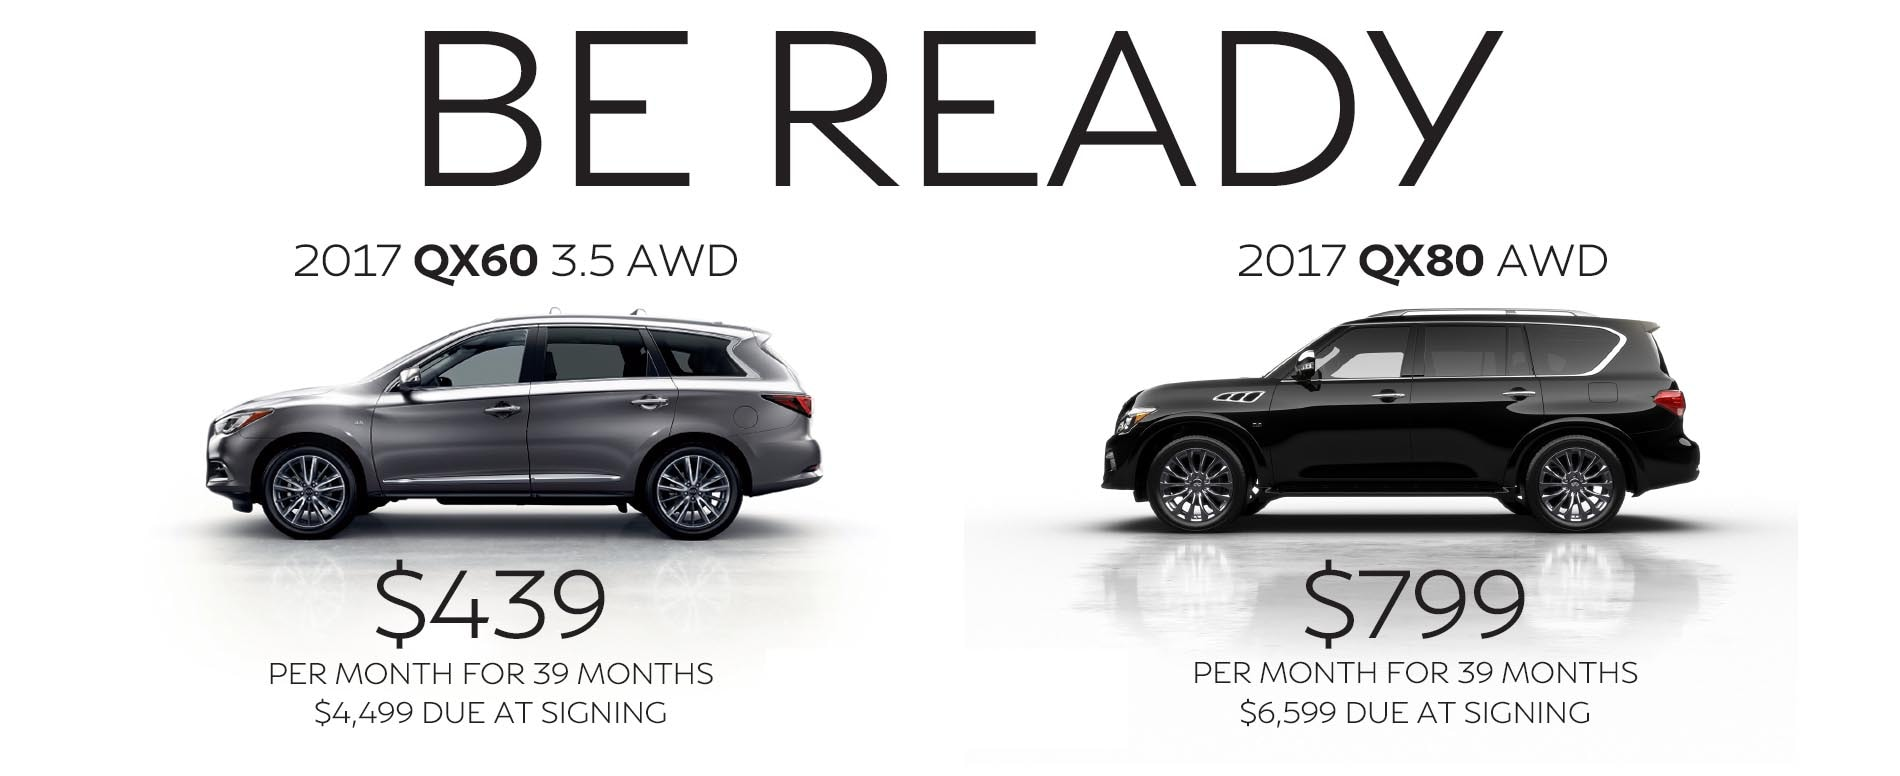 Be Impressed. Lease a 2017 Infiniti QX60 for $439 per month with $4,499 due at signing or lease a 2017 QX80 for $799 per month with $6,599 due at signing.